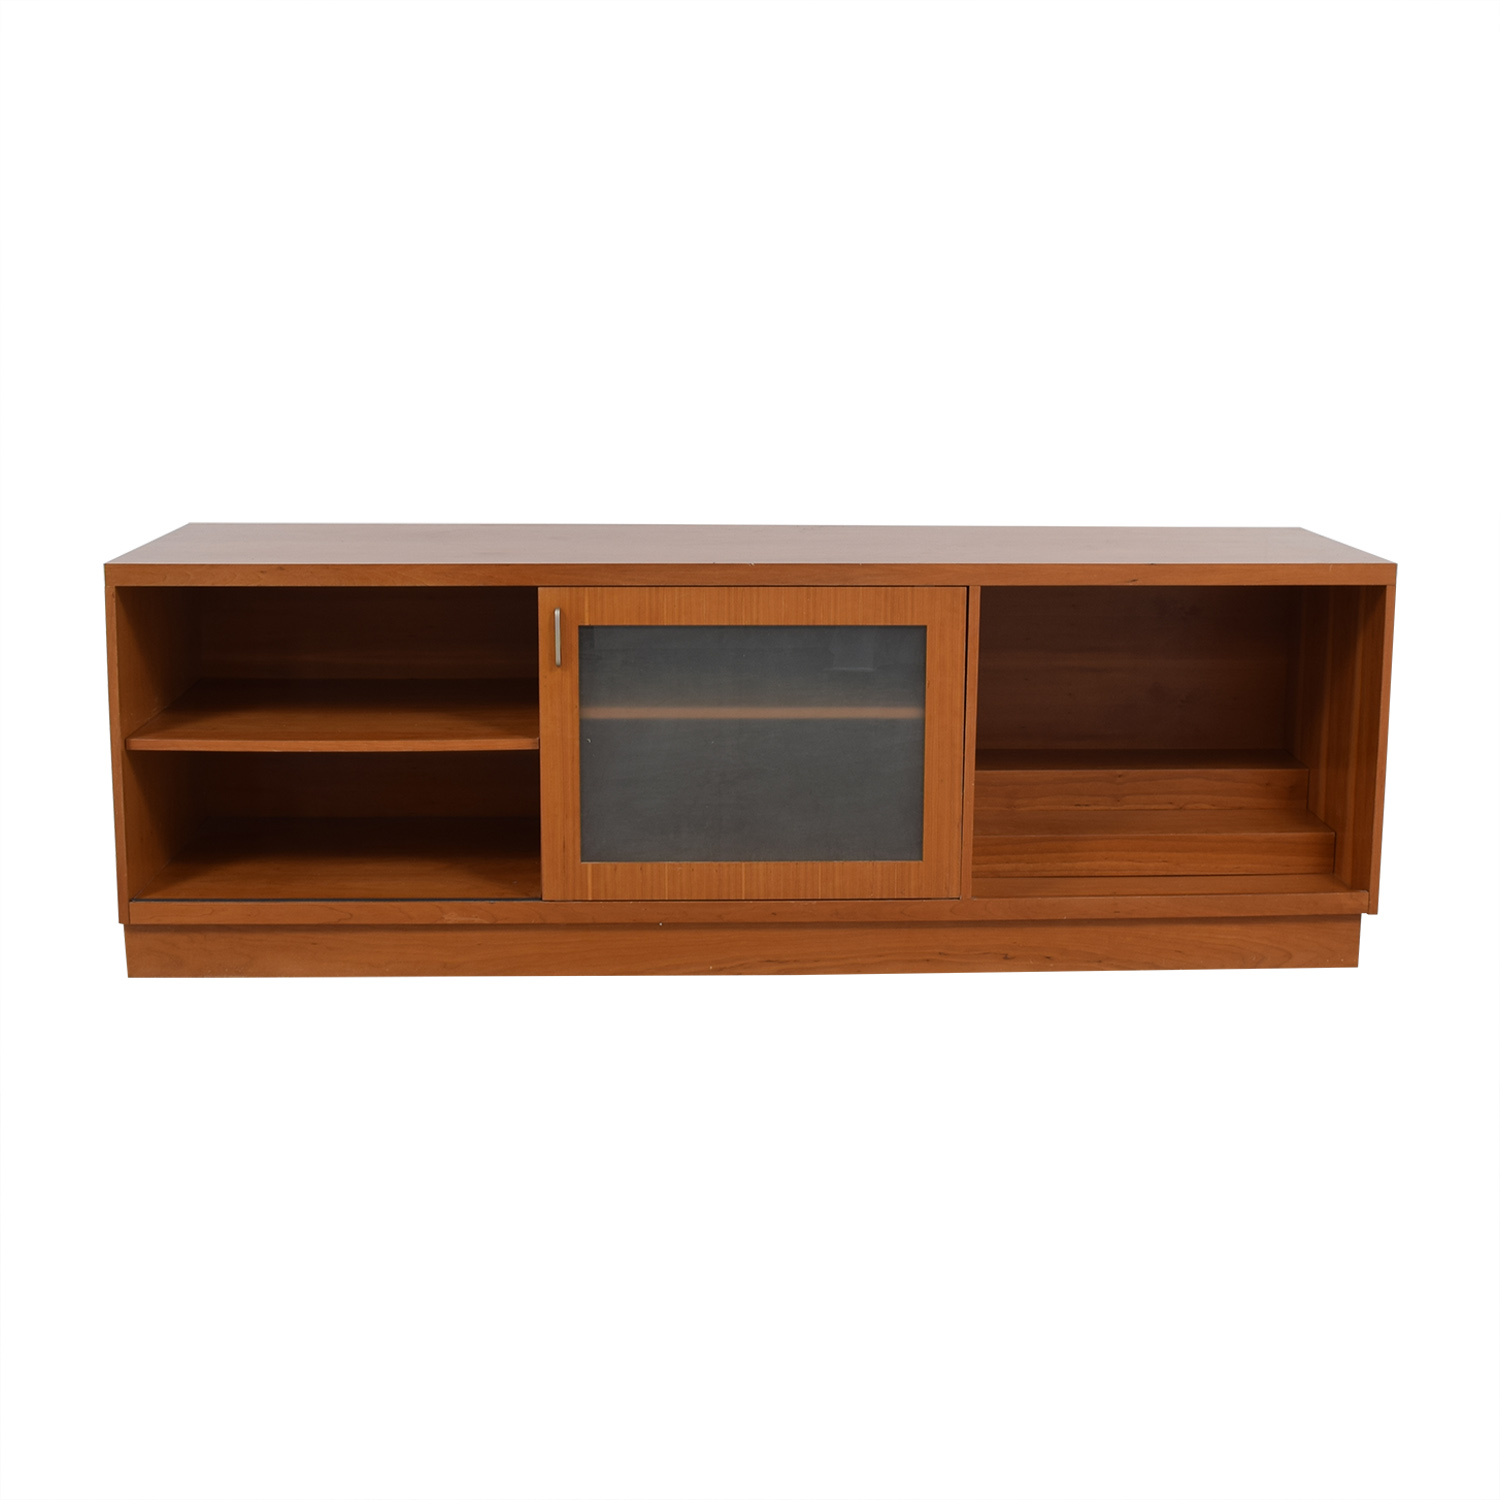 shop Metropolitan Design Center Metropolitan Design Center Entertainment Unit online